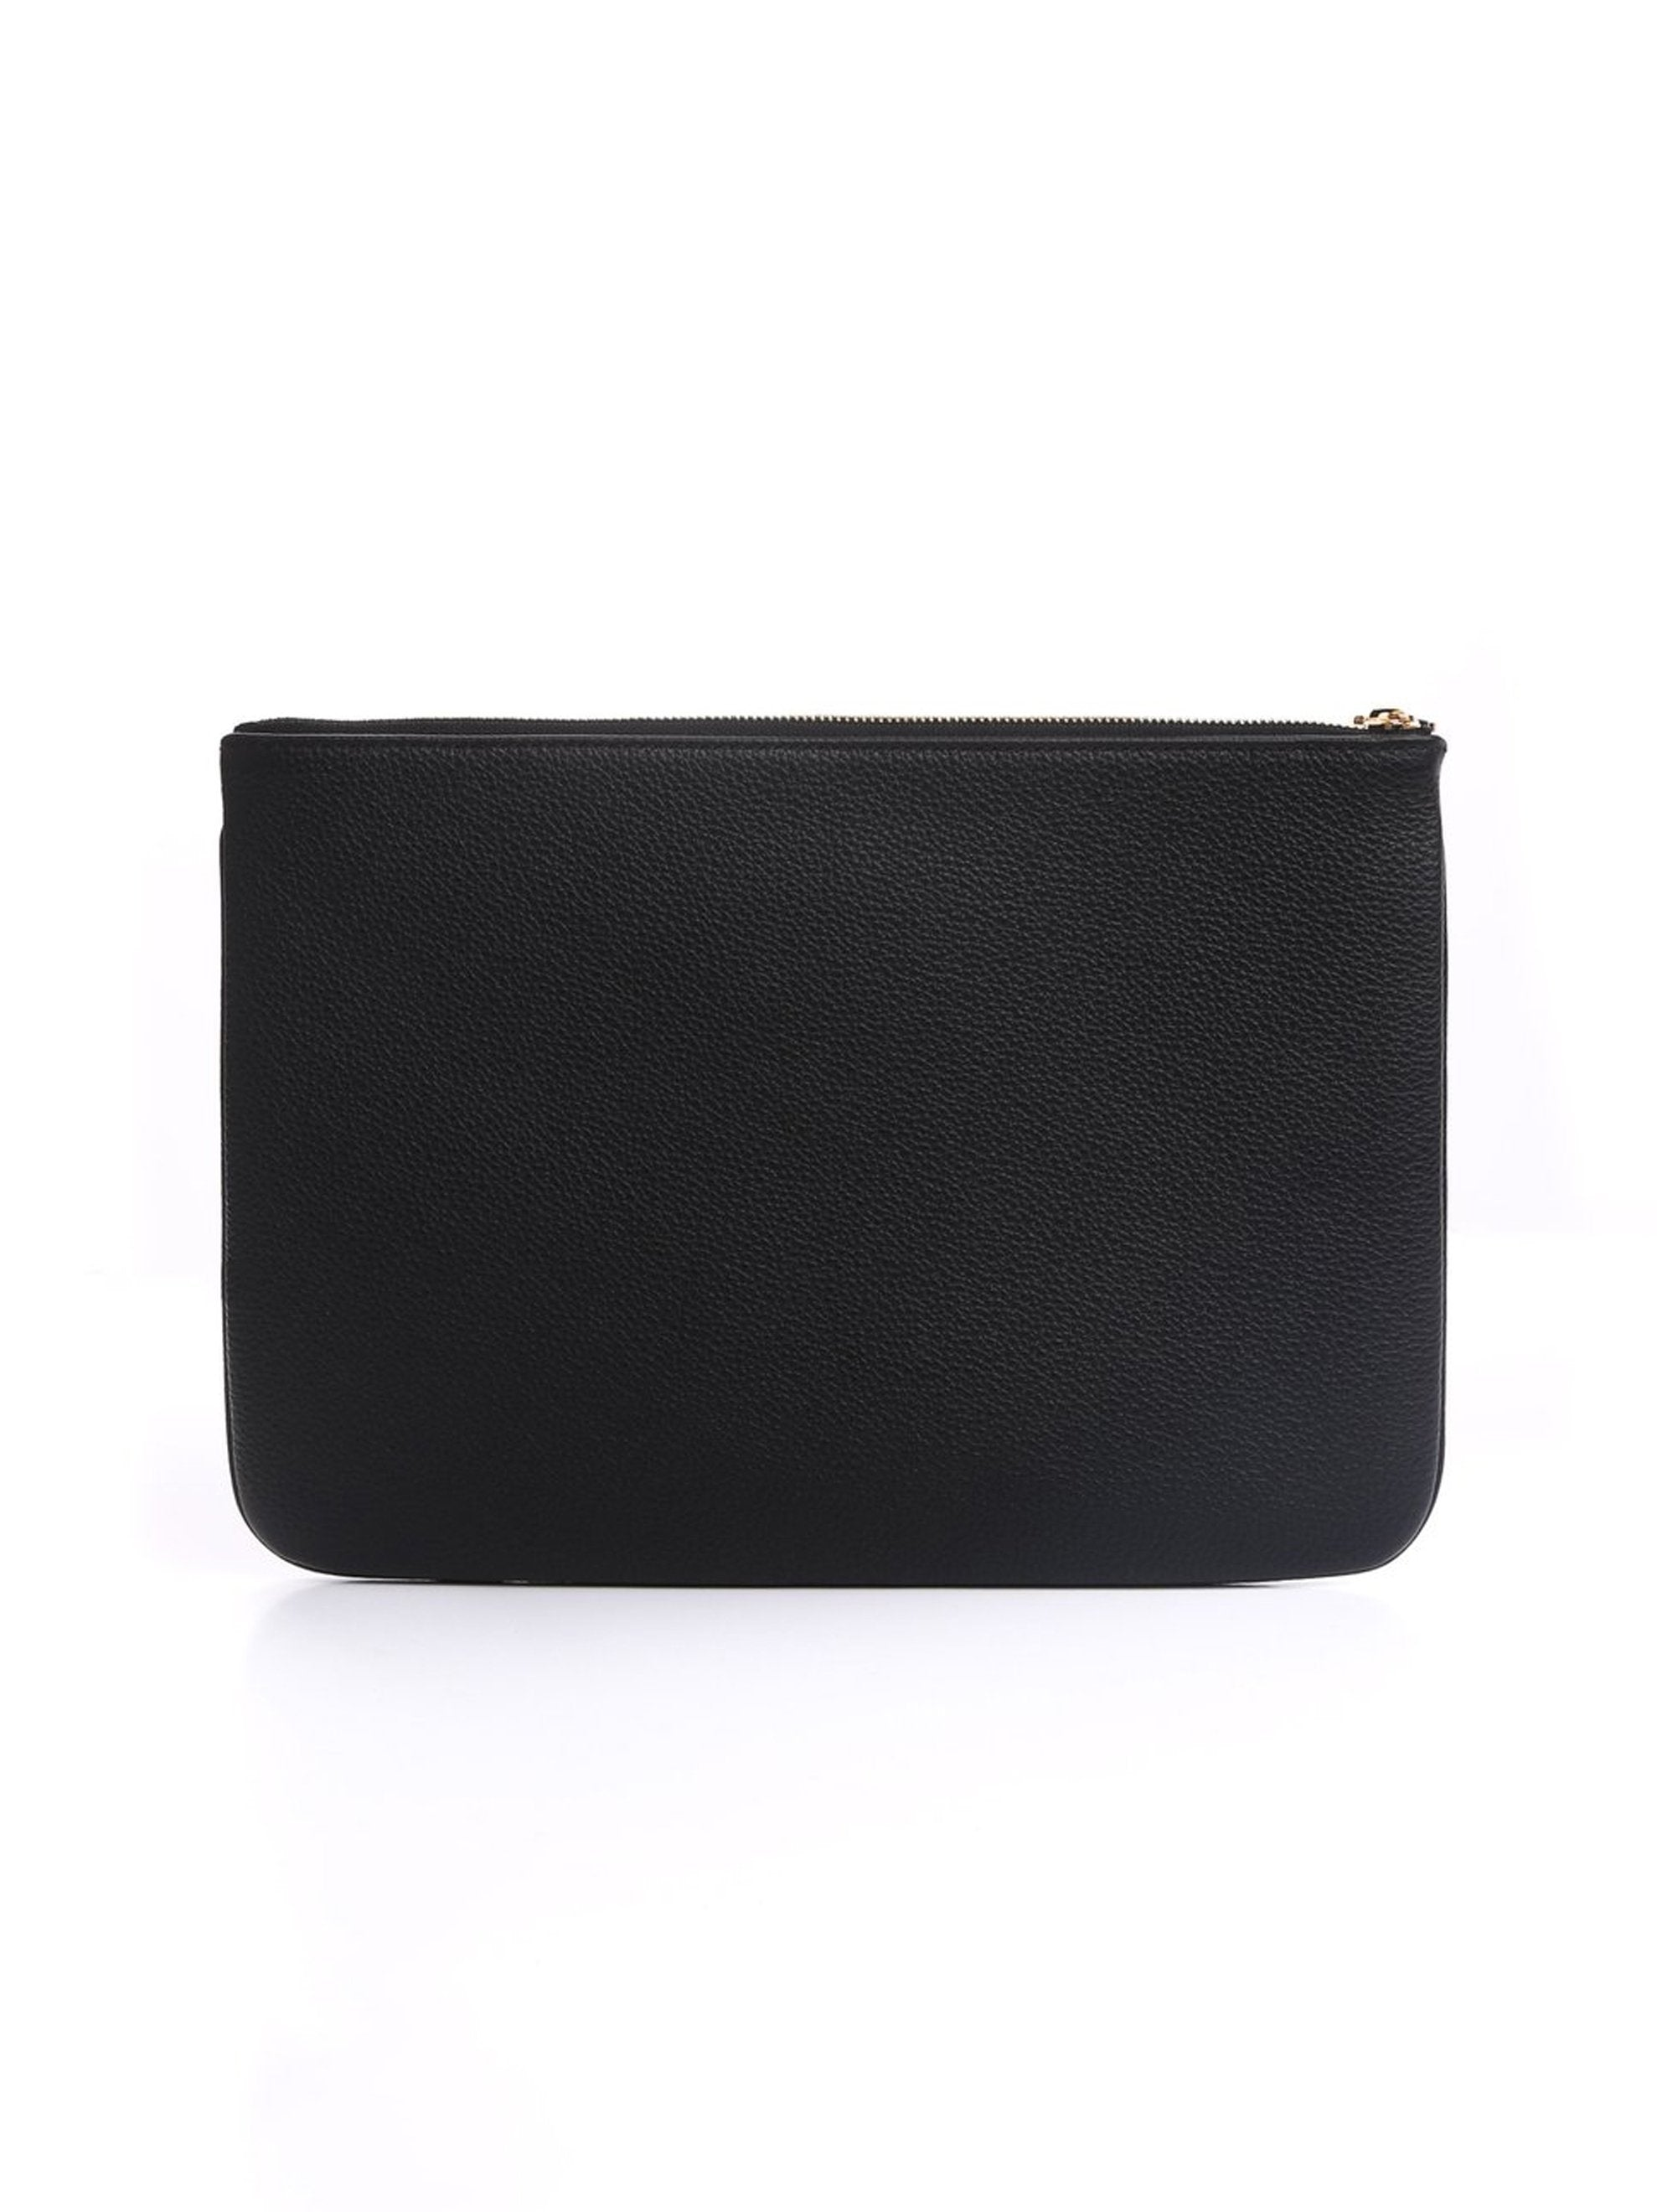 Black Leather Pouch 3